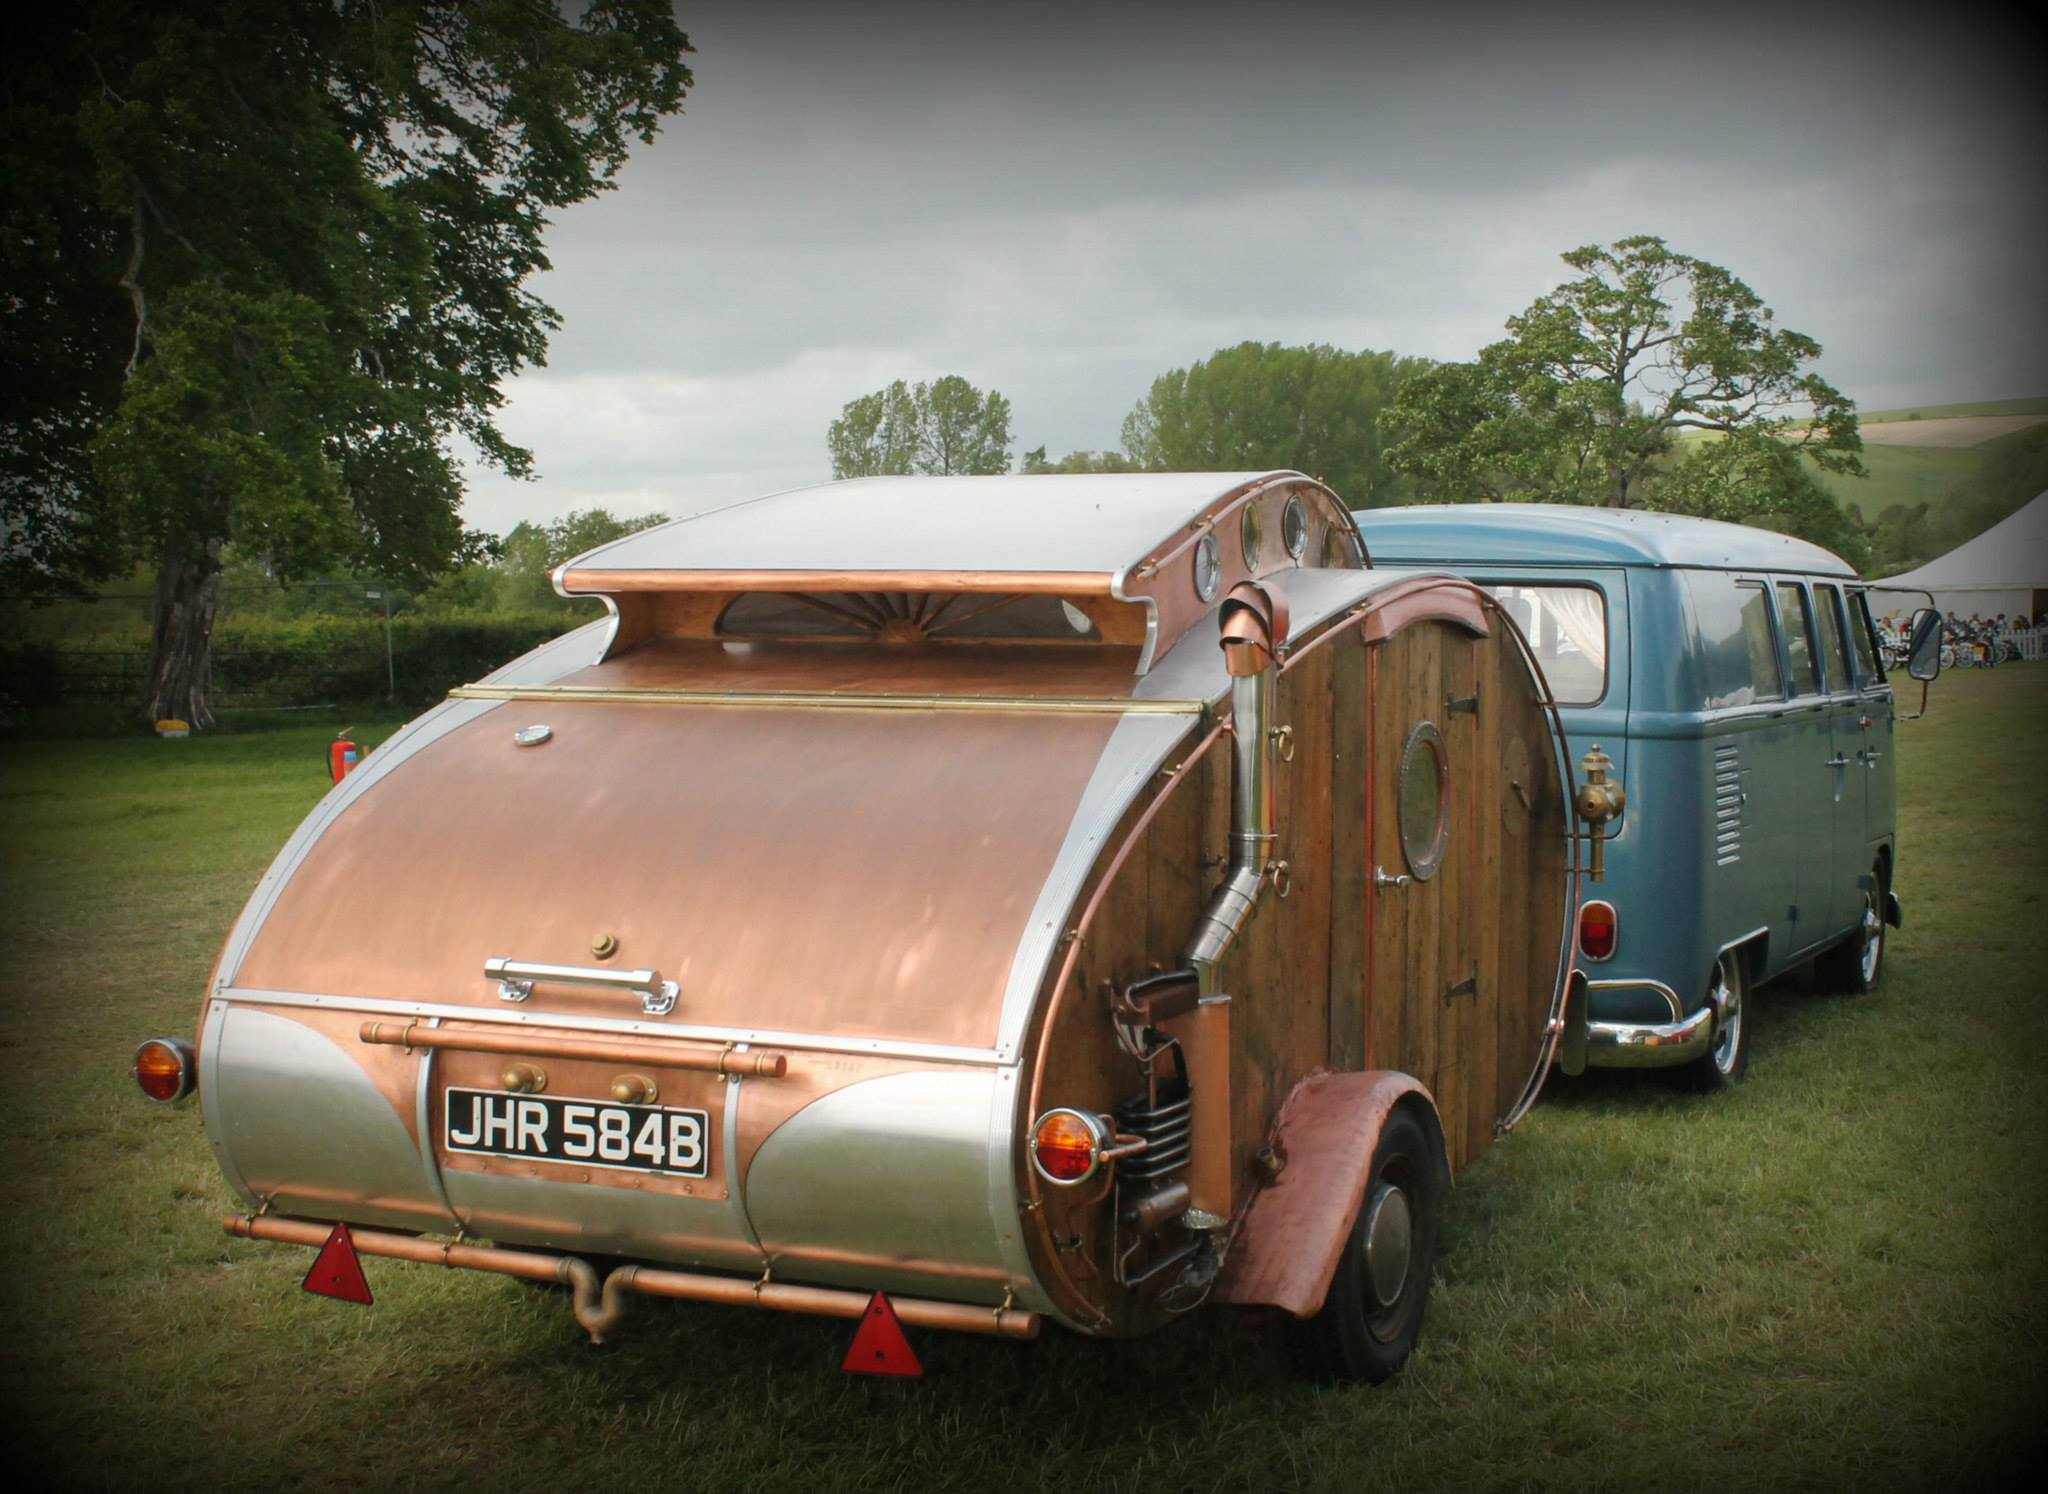 Posted in retro vintage tagged classic cars teardrop caravan vintage - 34view